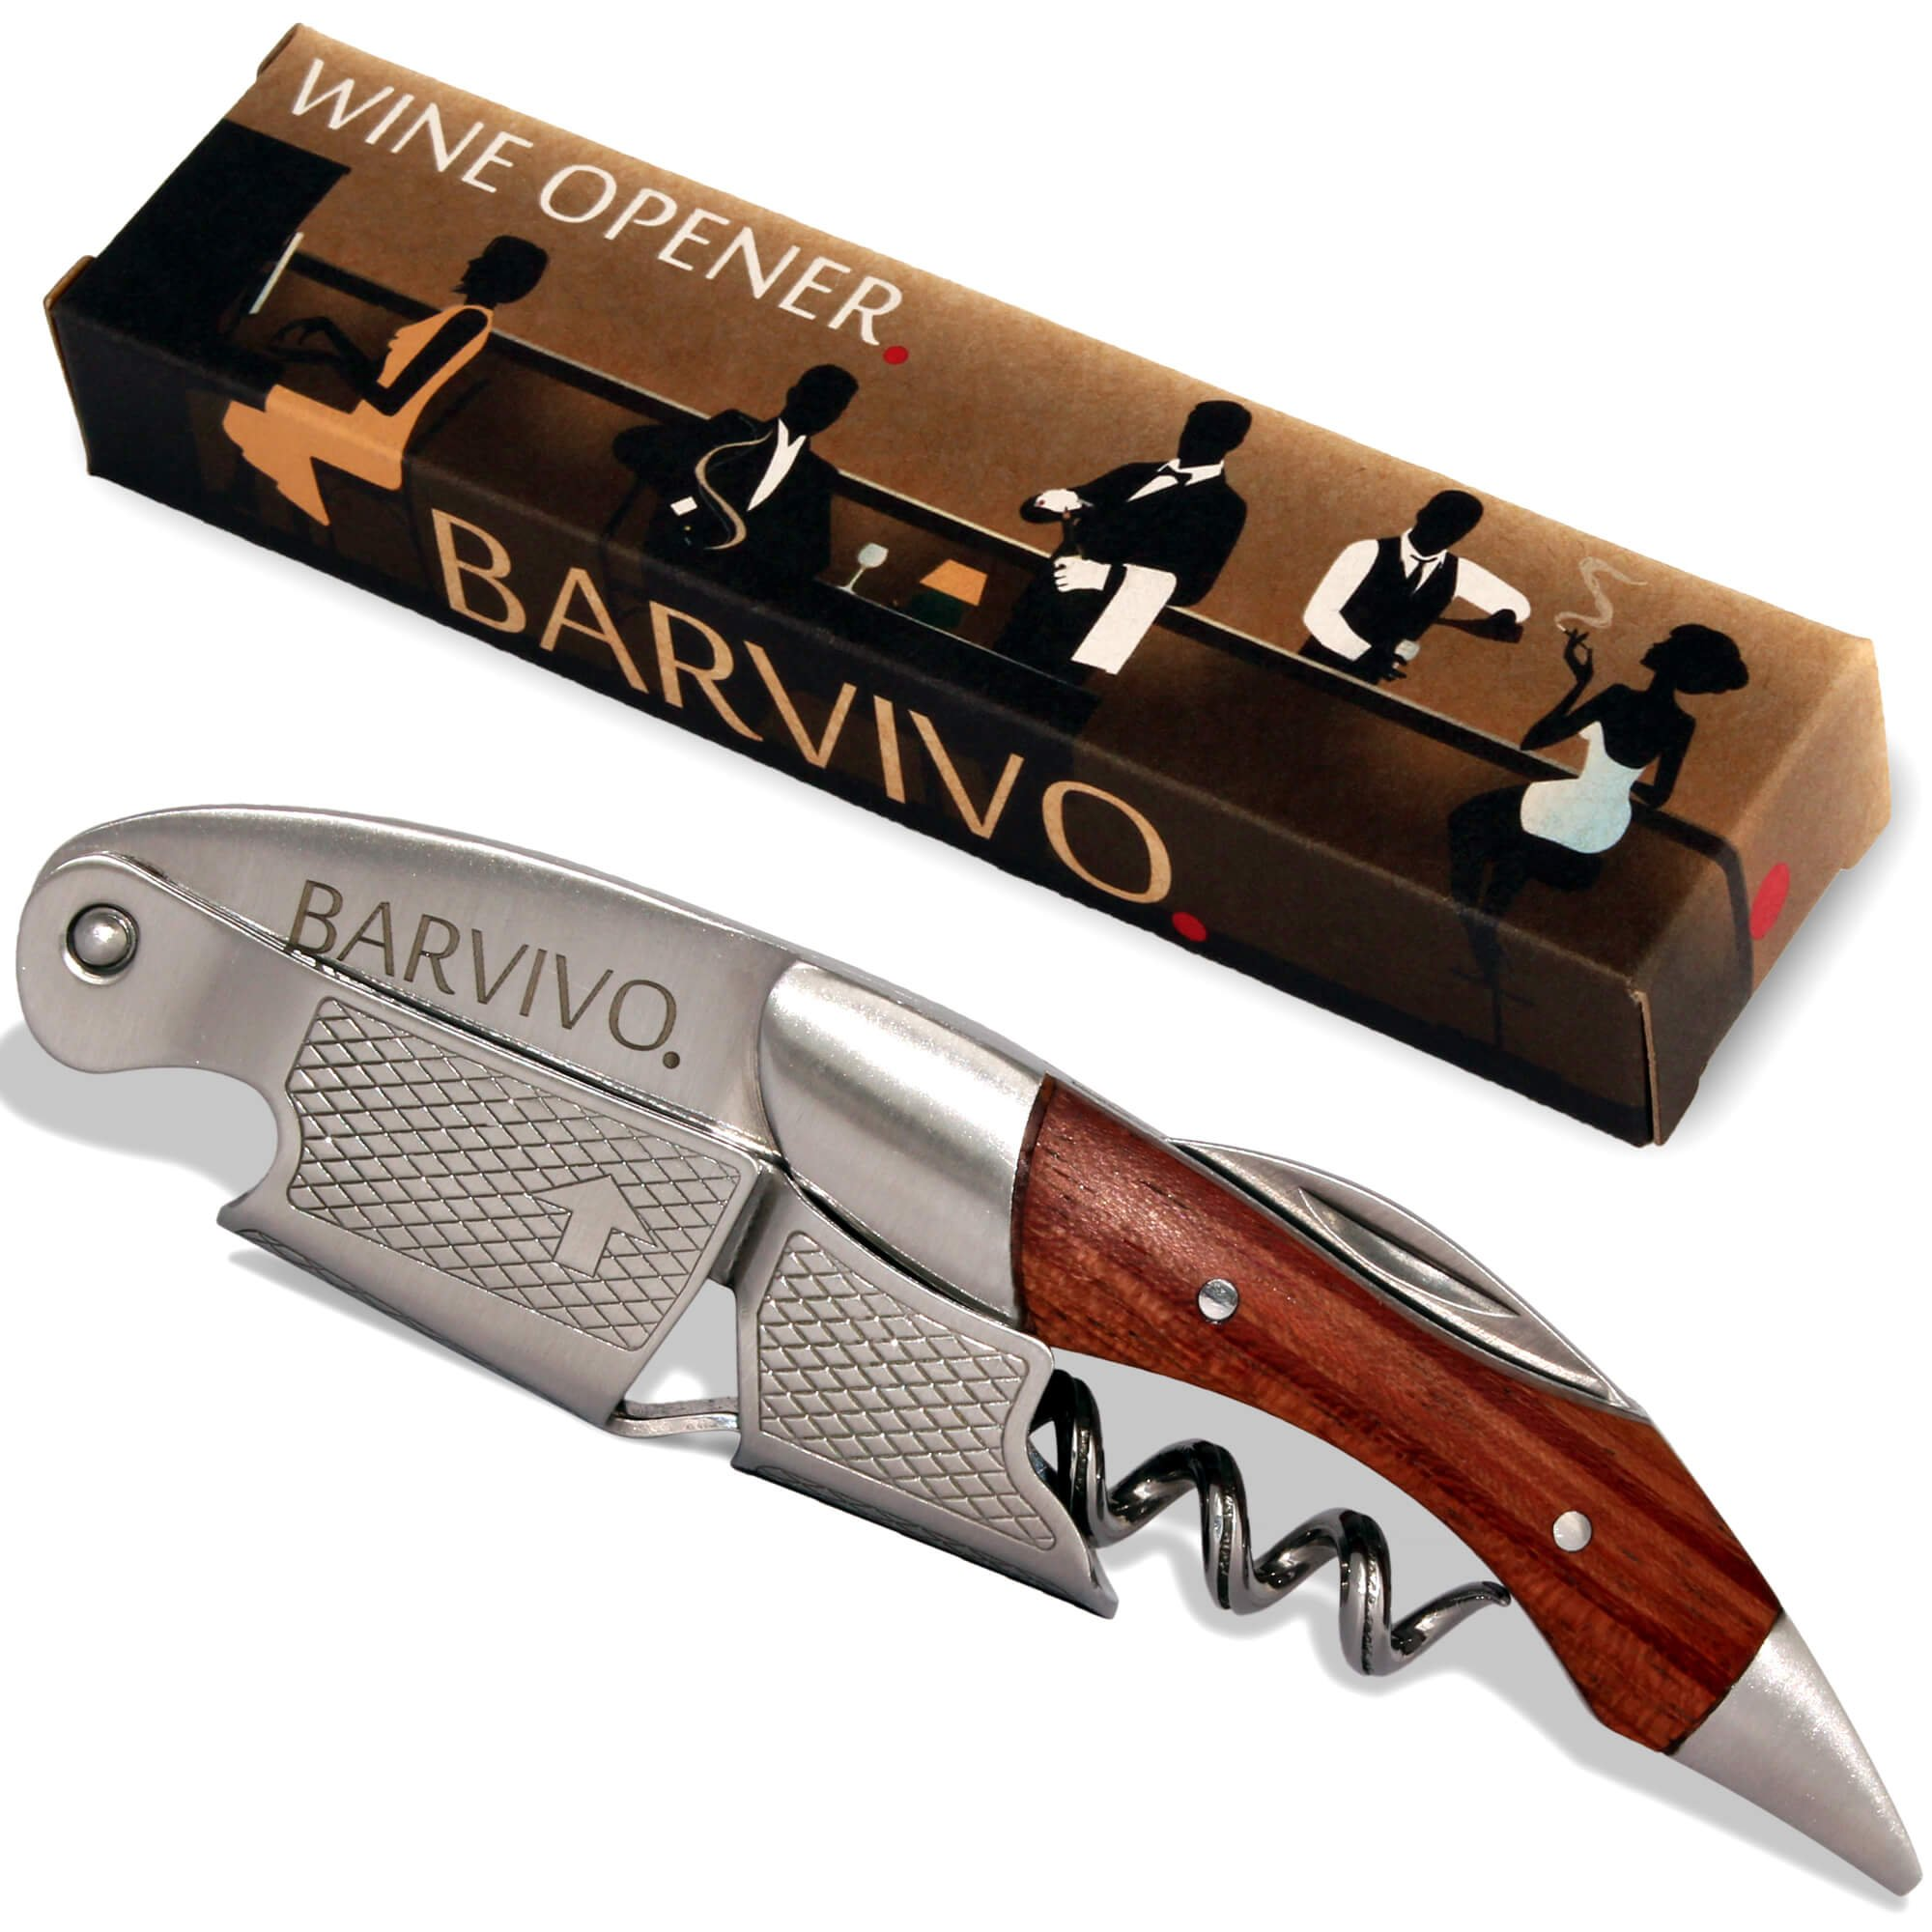 Professional Waiters Corkscrew by Barvivo - This Wine Opener is Used to Open Beer and Wine Bottles by Waiters, Sommelier and Bartenders Around the World. Made of Stainless Steel and Natural Rosewood.